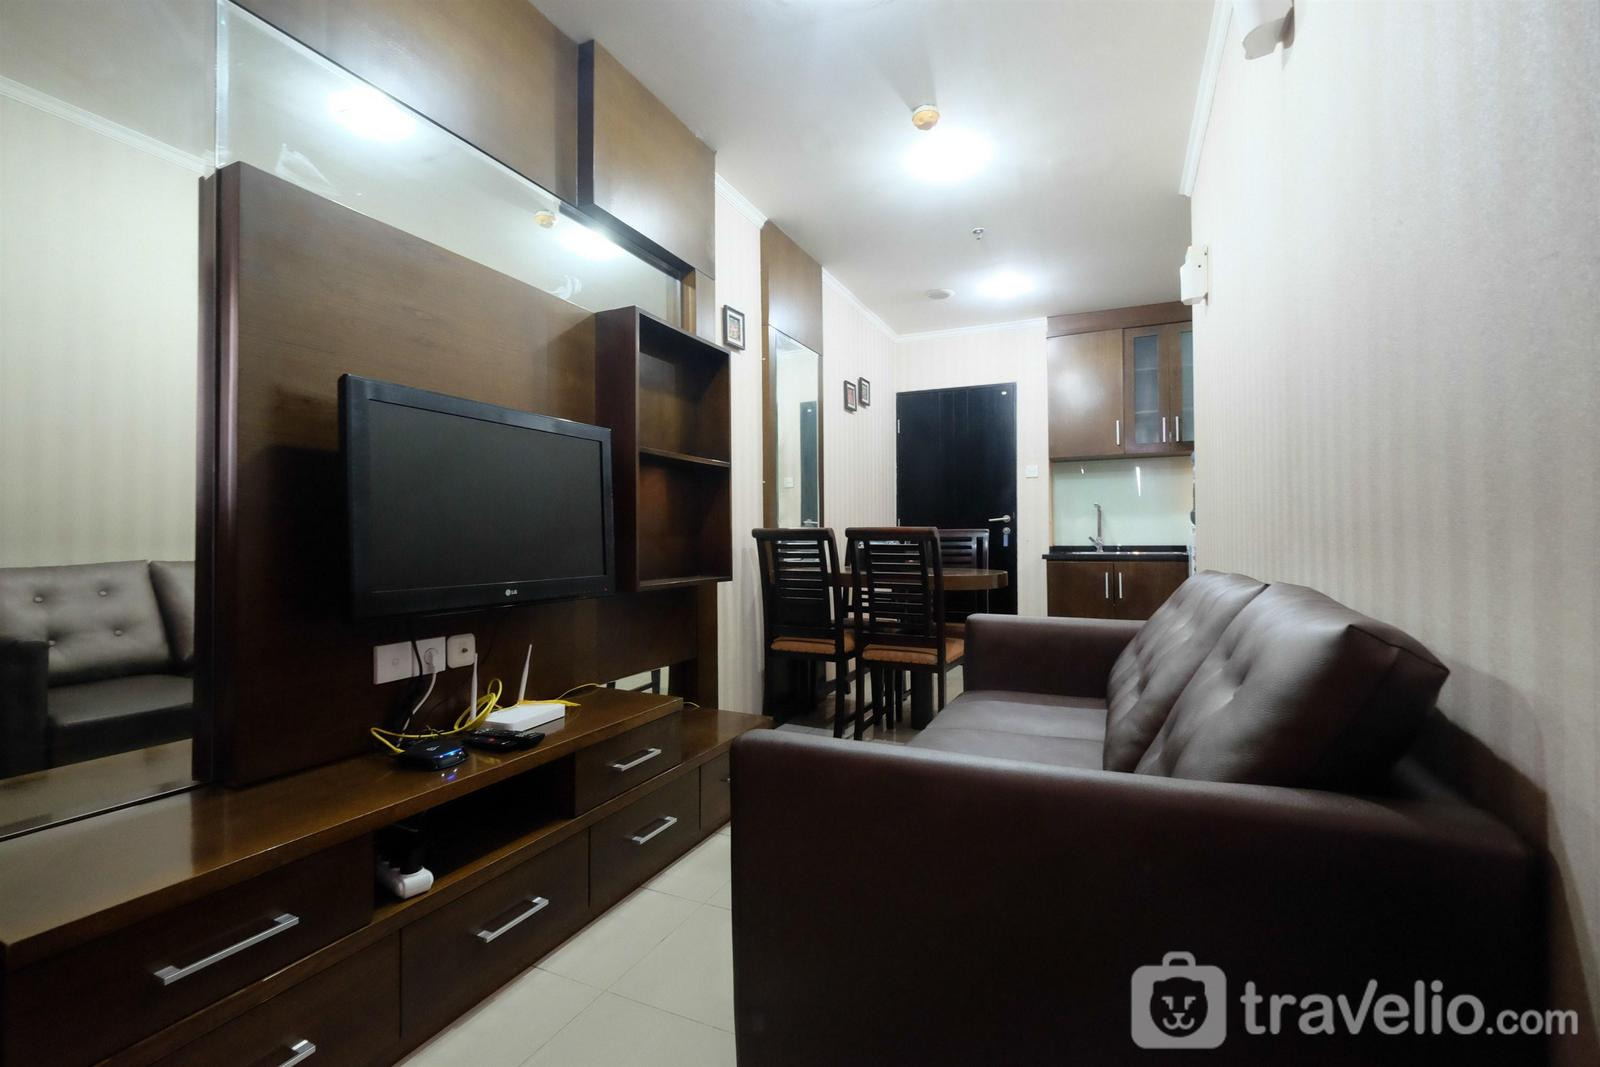 Cervino Village Casablanca - Comfortable 2BR Cervino Village Casablanca Apartment By Travelio